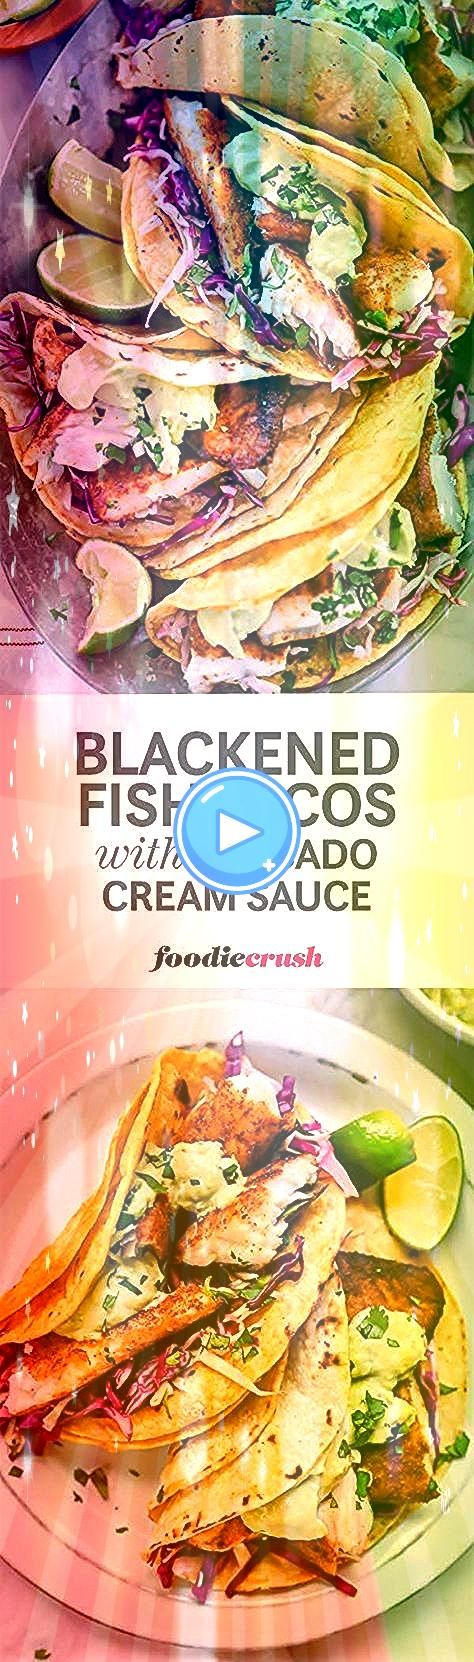 Fish Recipes Bajastyle fish tacos get a blackened cajun fix cooled off with an avocado cilantro tartar sauce and cabbage for a fast and easy taco meal  Bajastyle fish tac...